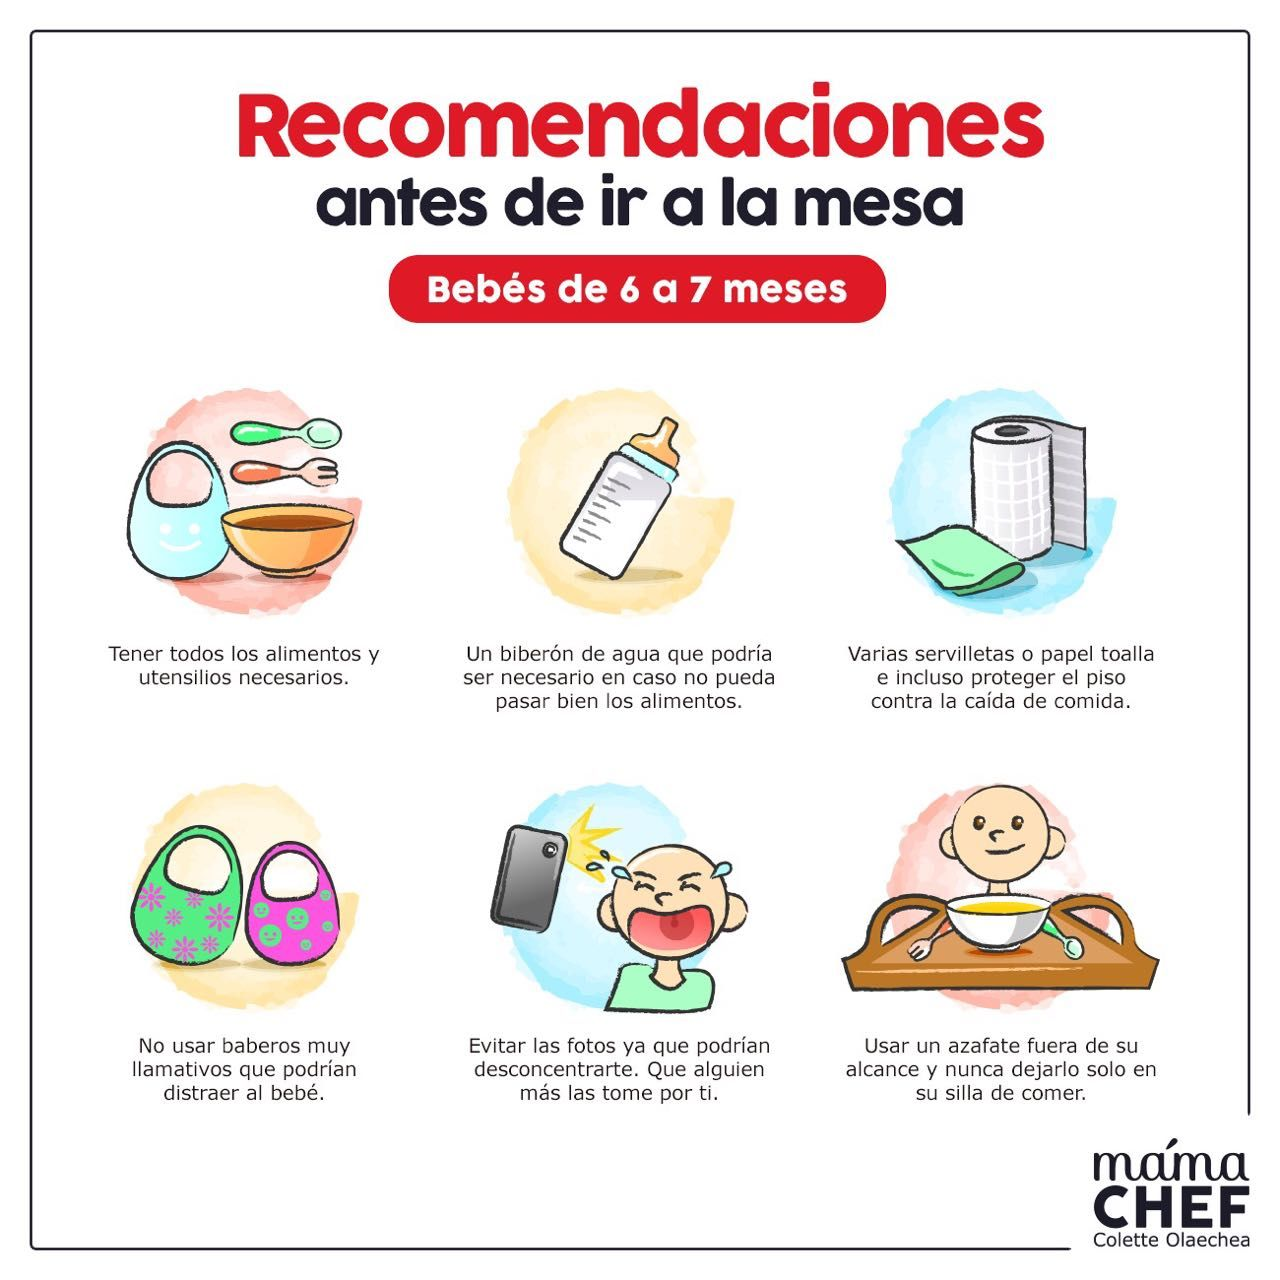 Pin by colette olaechea on mama chef pinterest - Papillas para bebes de 6 meses ...